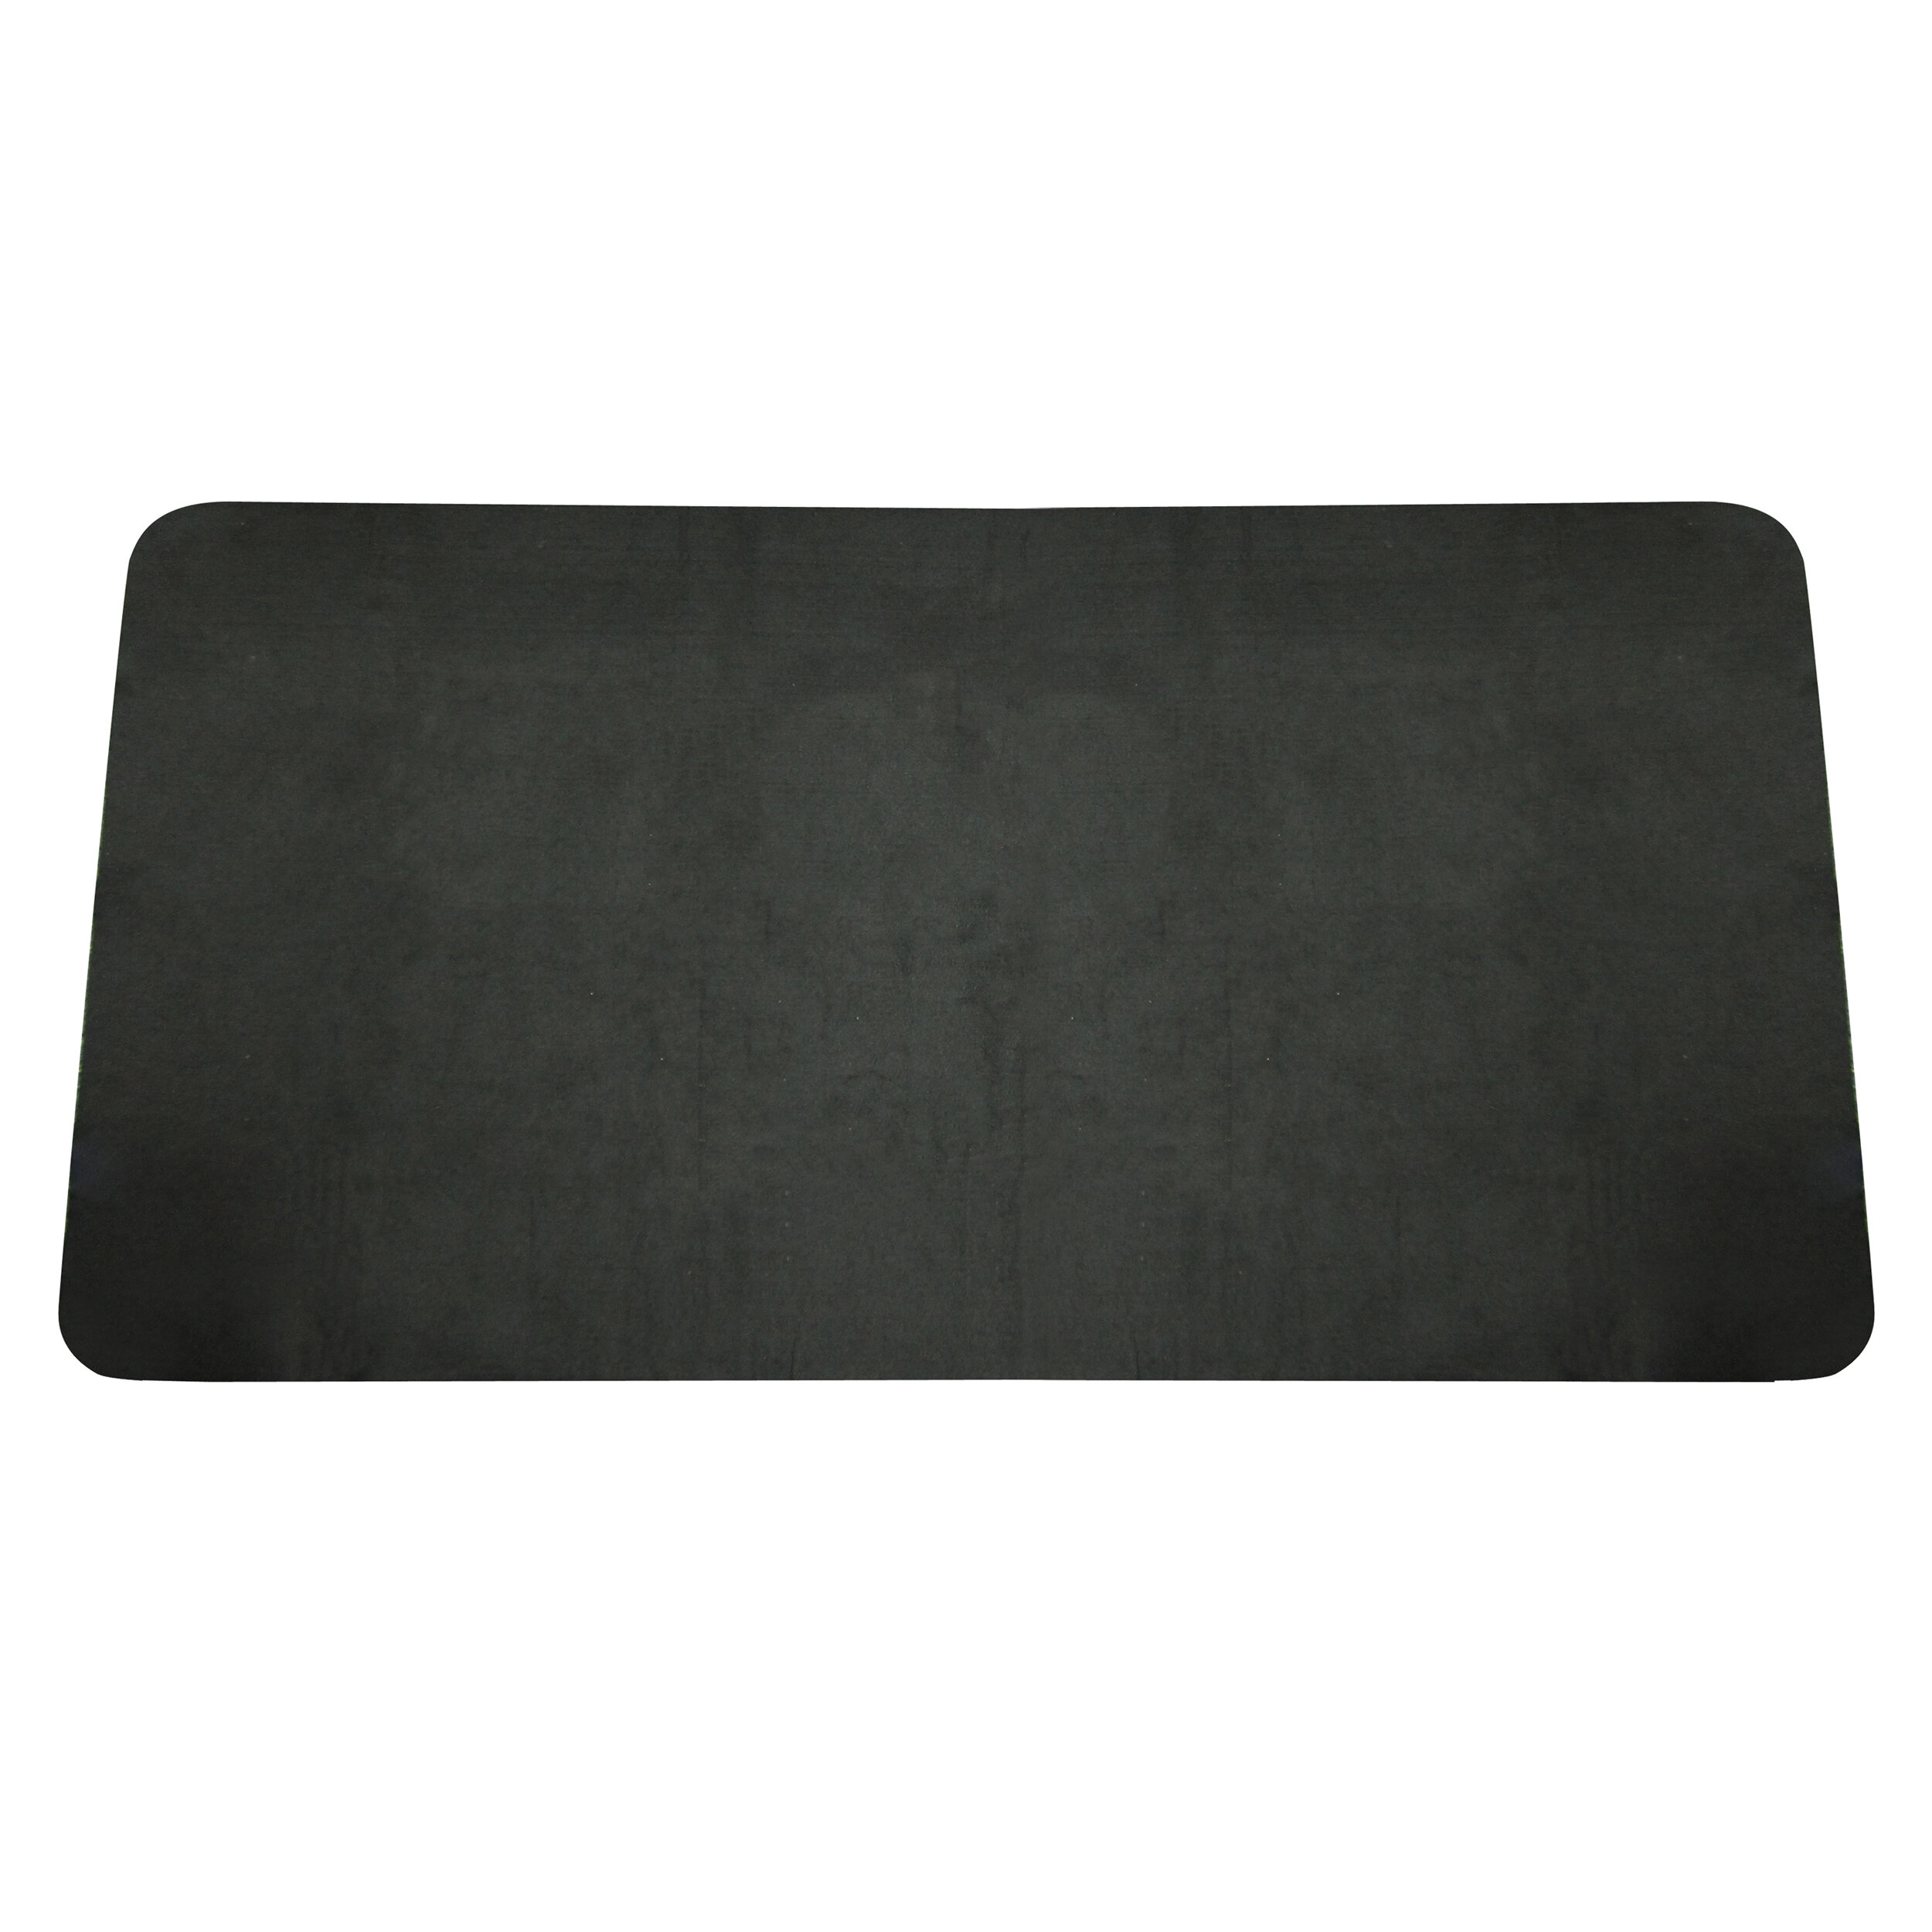 x in fatigue black anti mat extreme guide mats top buying reviews sky standing best